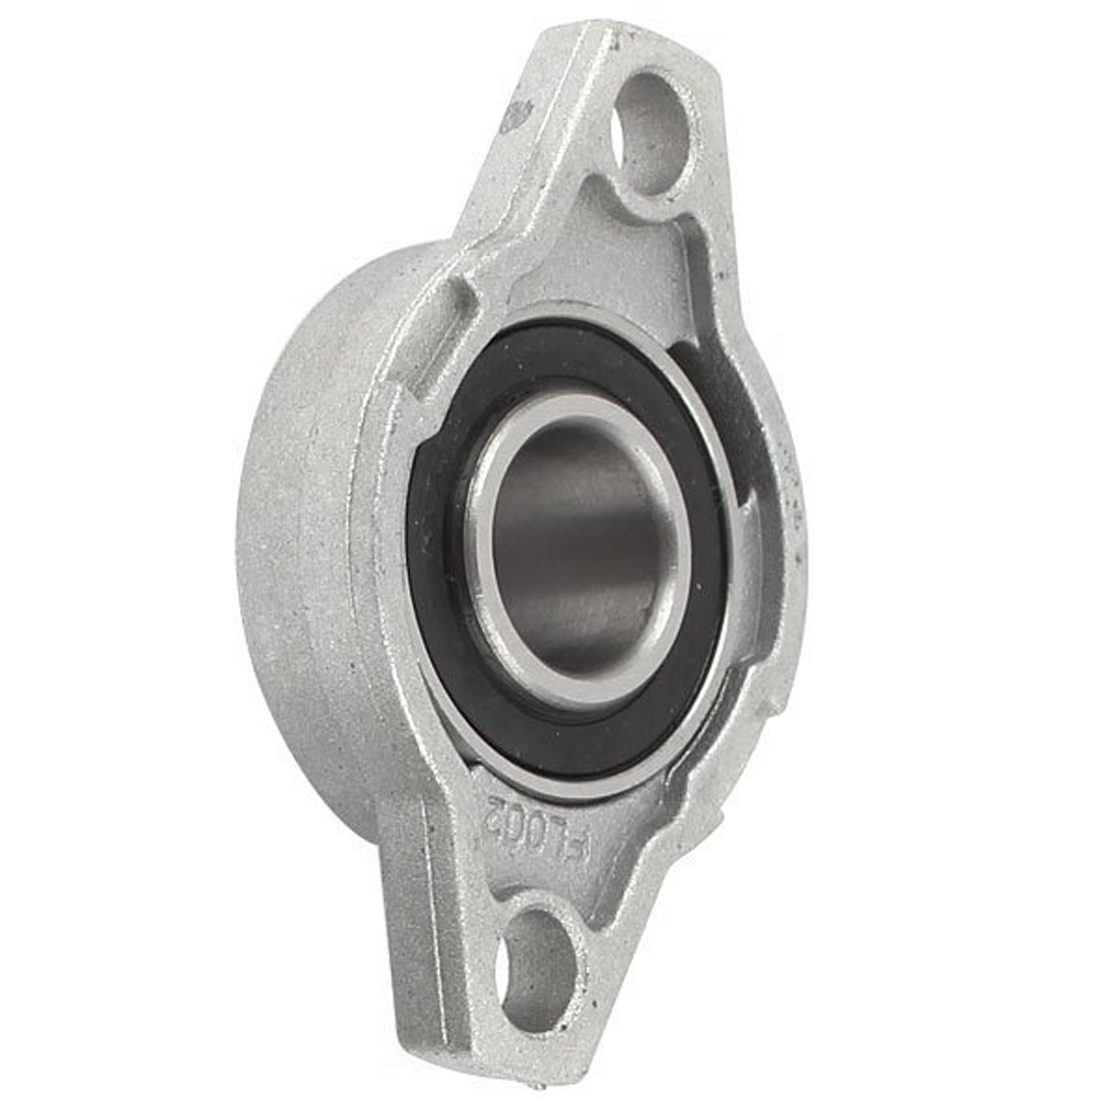 JFBL Hot KFL002 FL002 Self Aligning Pillow Block Flange Bearing 15mm 2PCS толстовка alpha block crew fl